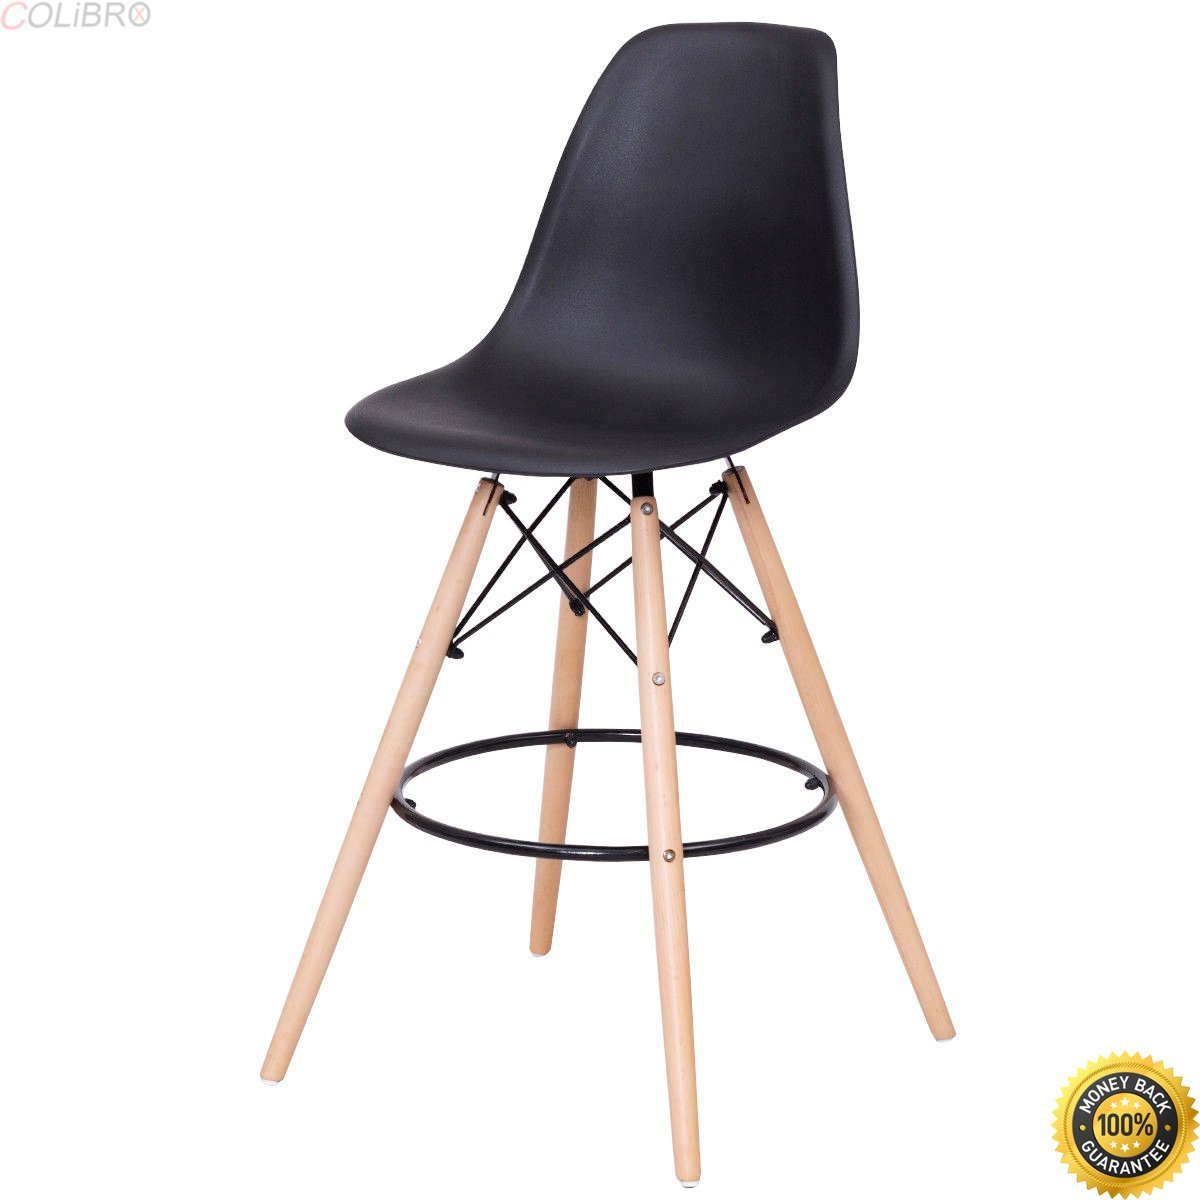 Cheap Cheap Game Chairs, find Cheap Game Chairs deals on line at